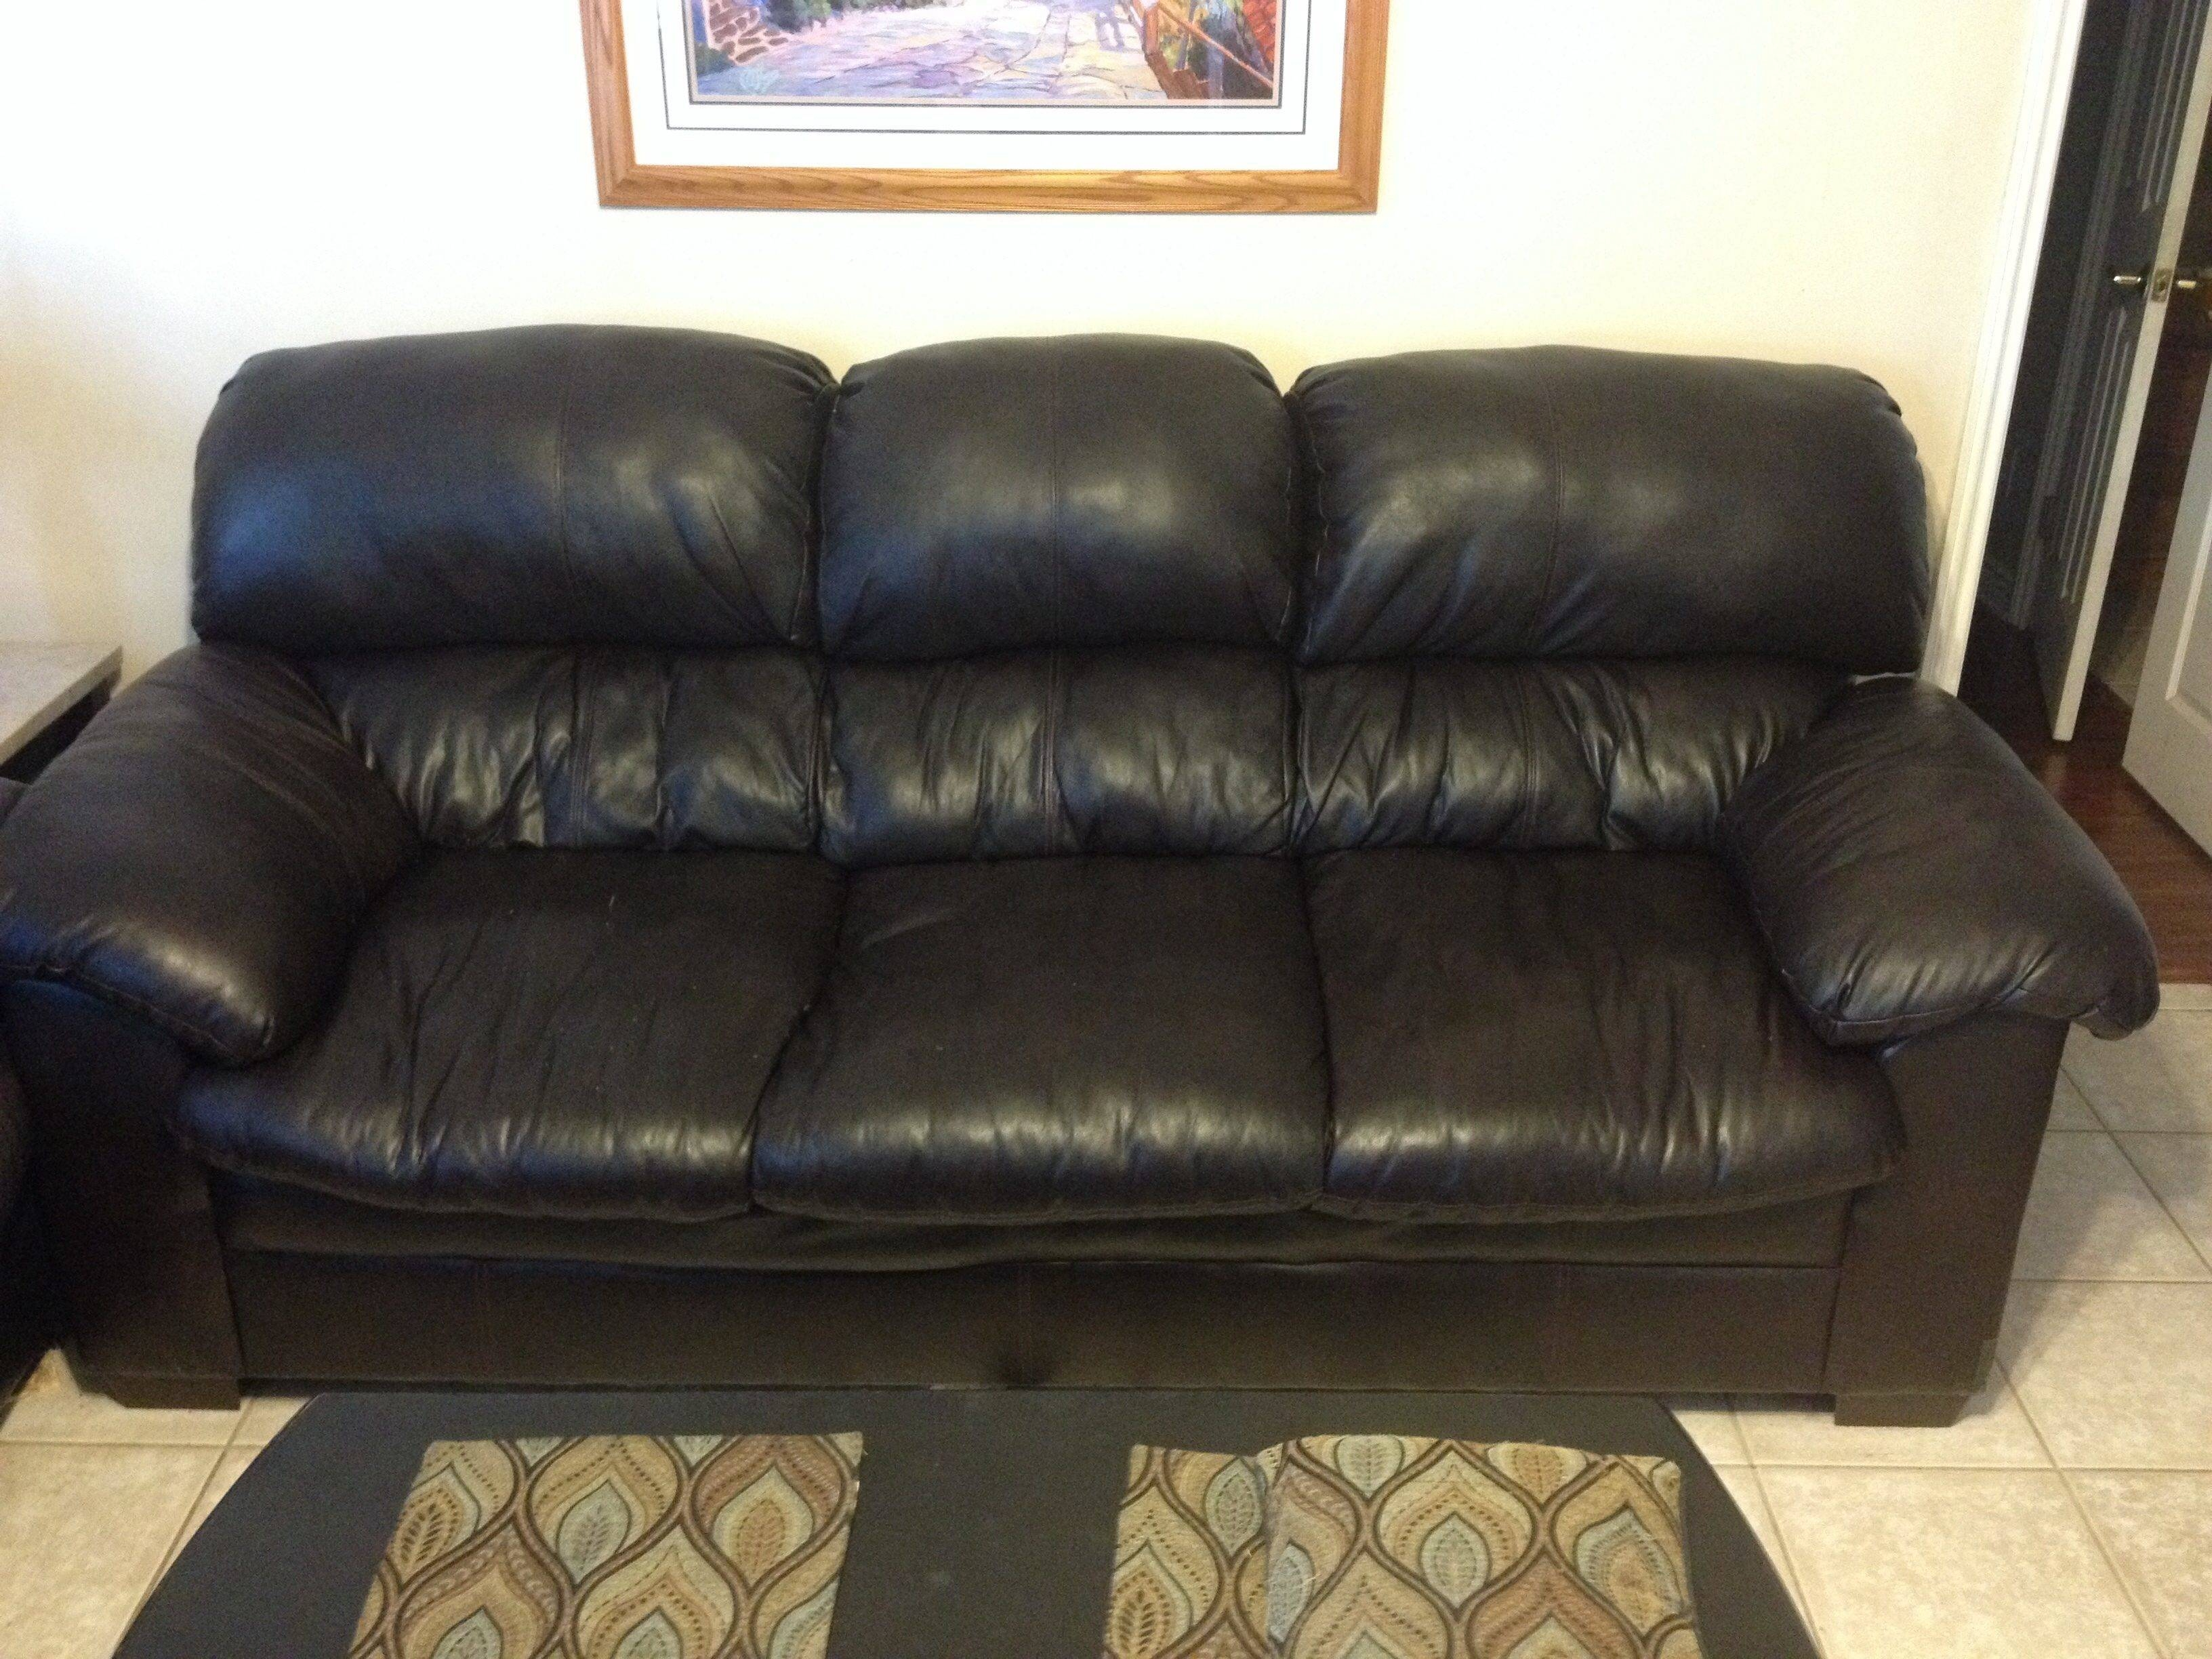 Stunning Sleeper Sofa Big Lots 34 About Remodel Sectional Sofa intended for Big Lots Leather Sofas (Image 15 of 15)